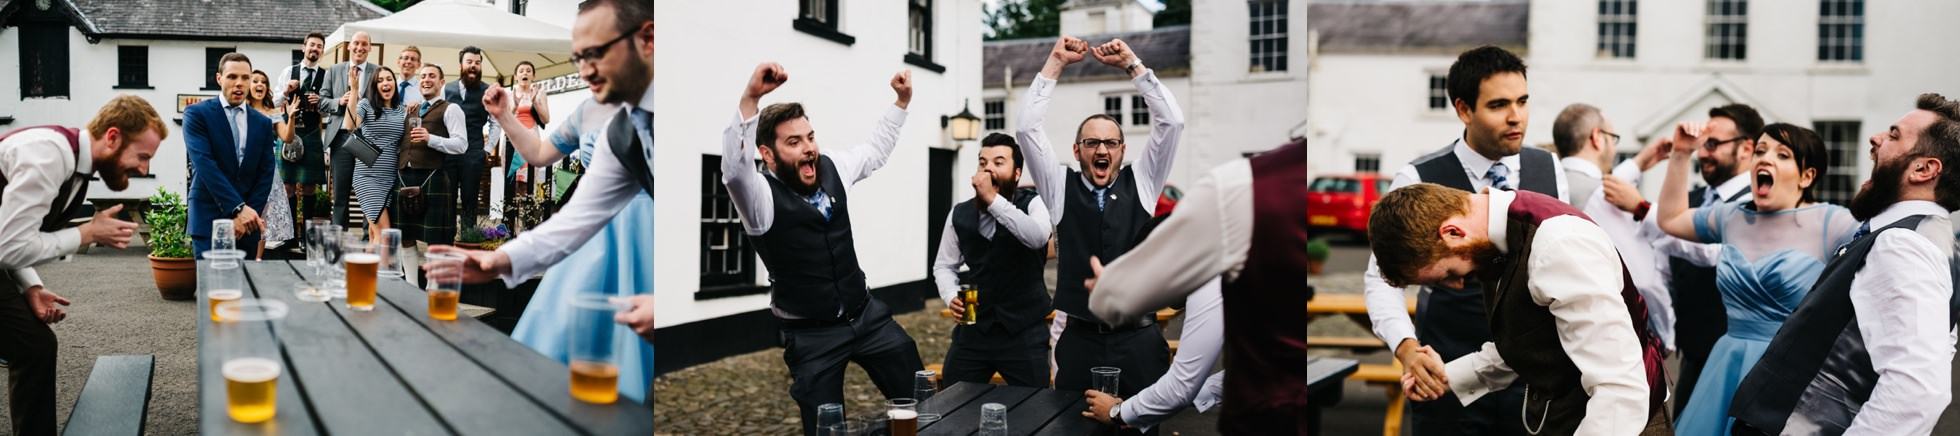 wedding photographer northern ireland, drinking games, tippy cup